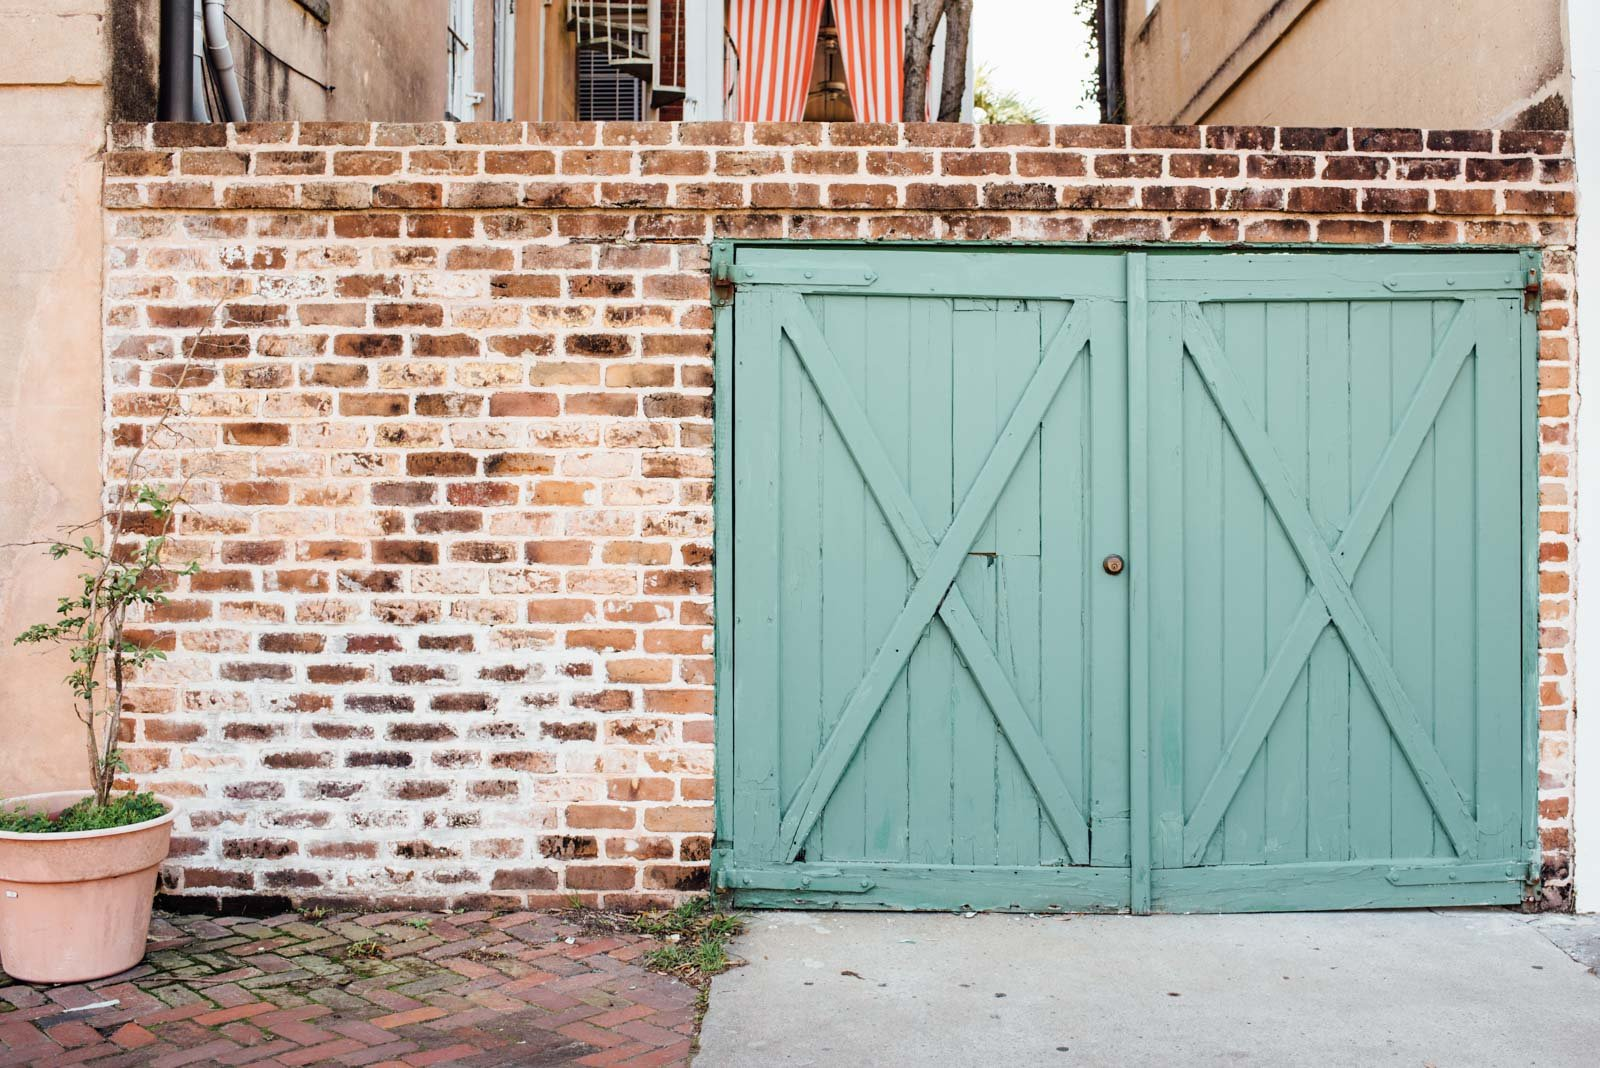 How to use colorful doors in photography composition